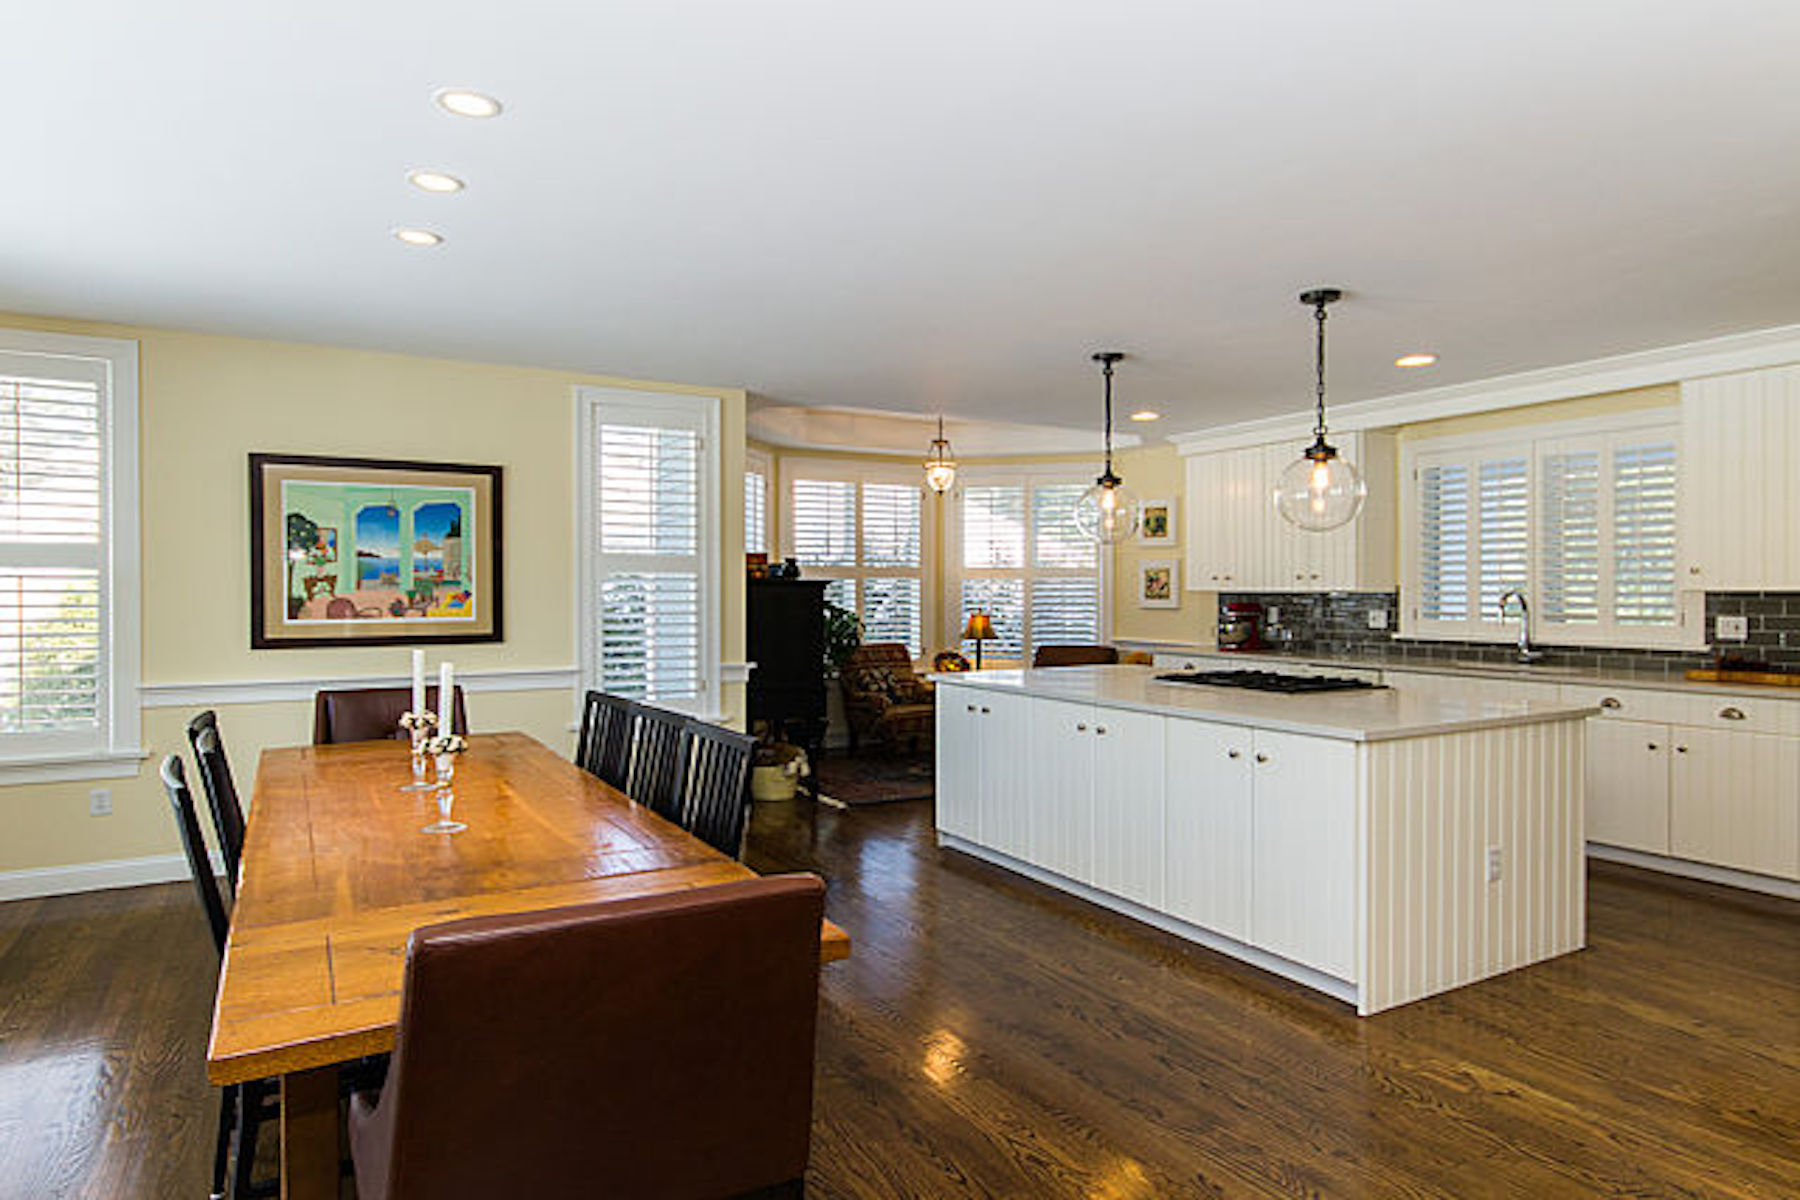 Additional photo for property listing at Lovely Views Of The 15th Fairway 9 Long Ridge Lane Ipswich, Massachusetts 01938 Estados Unidos